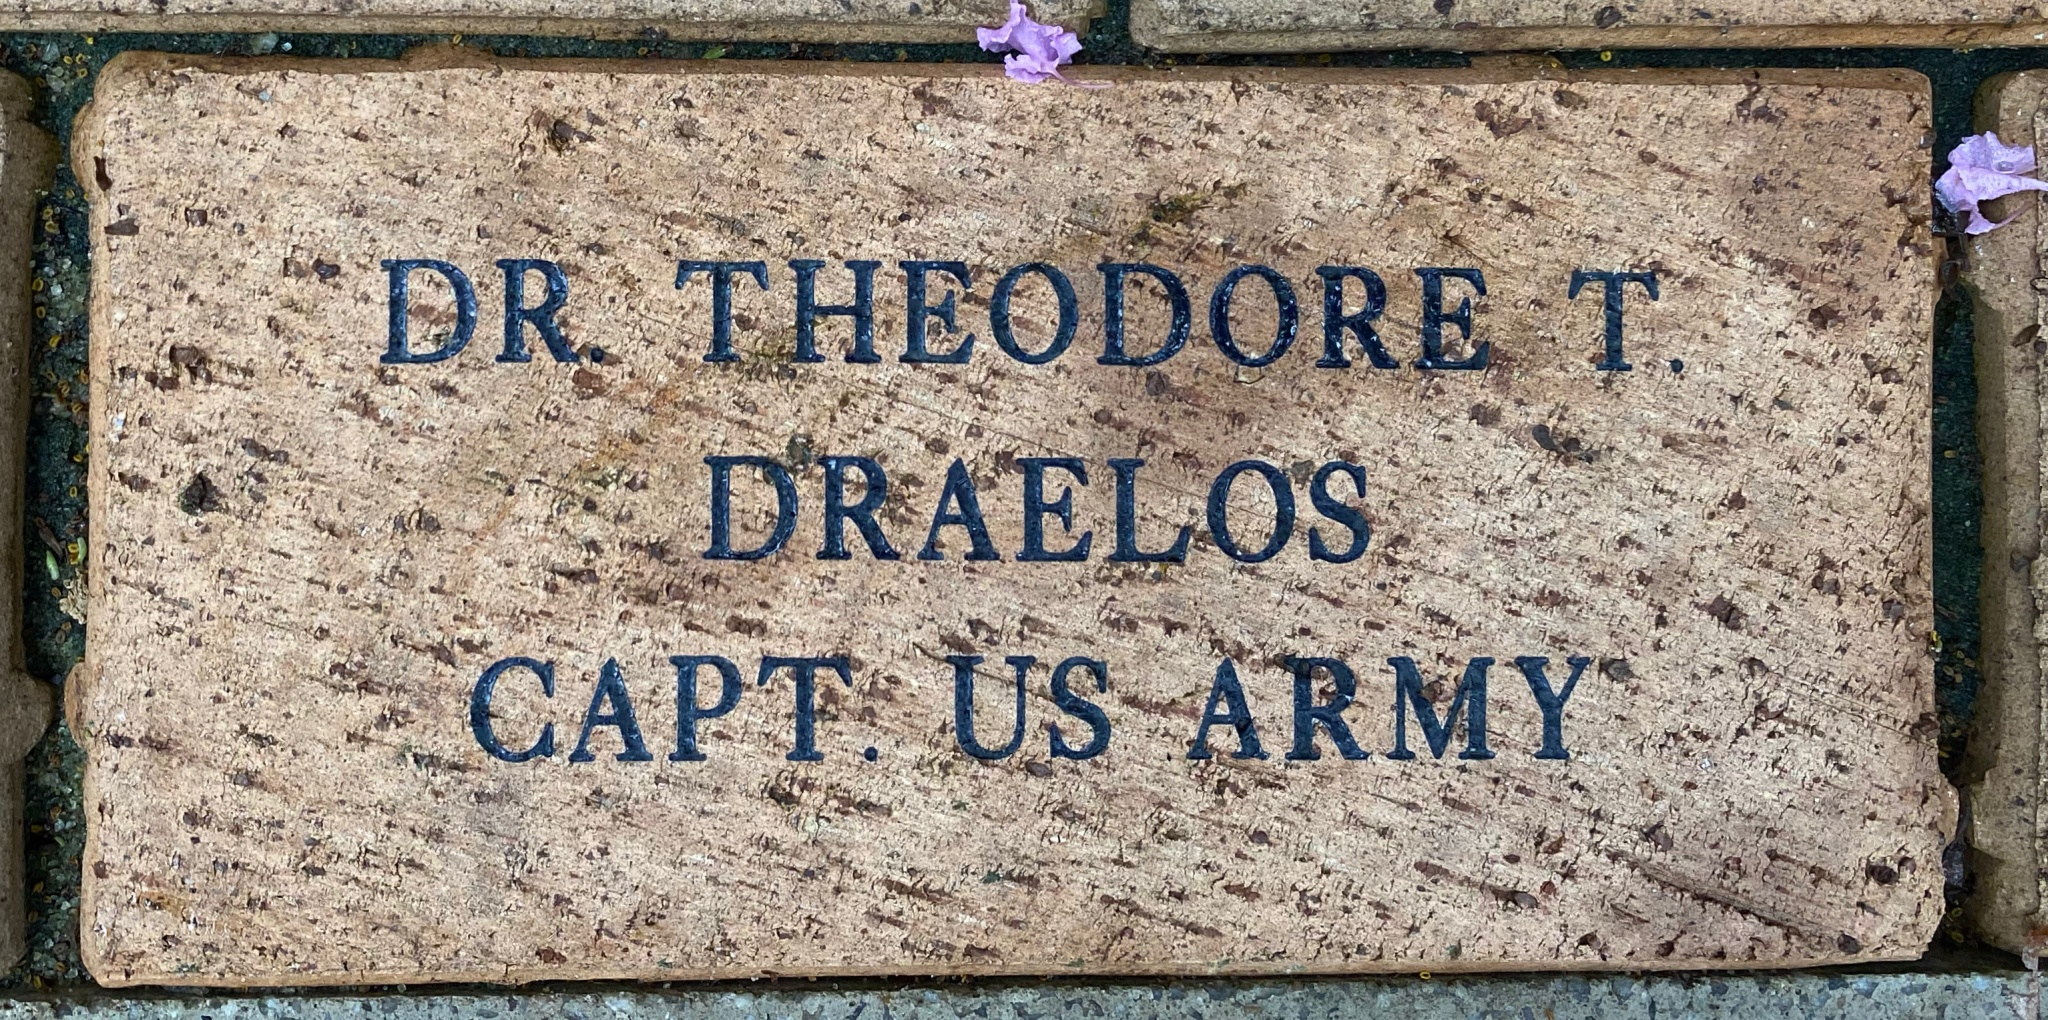 DR. THEODORE T. DRAELOS CAPT. US ARMY